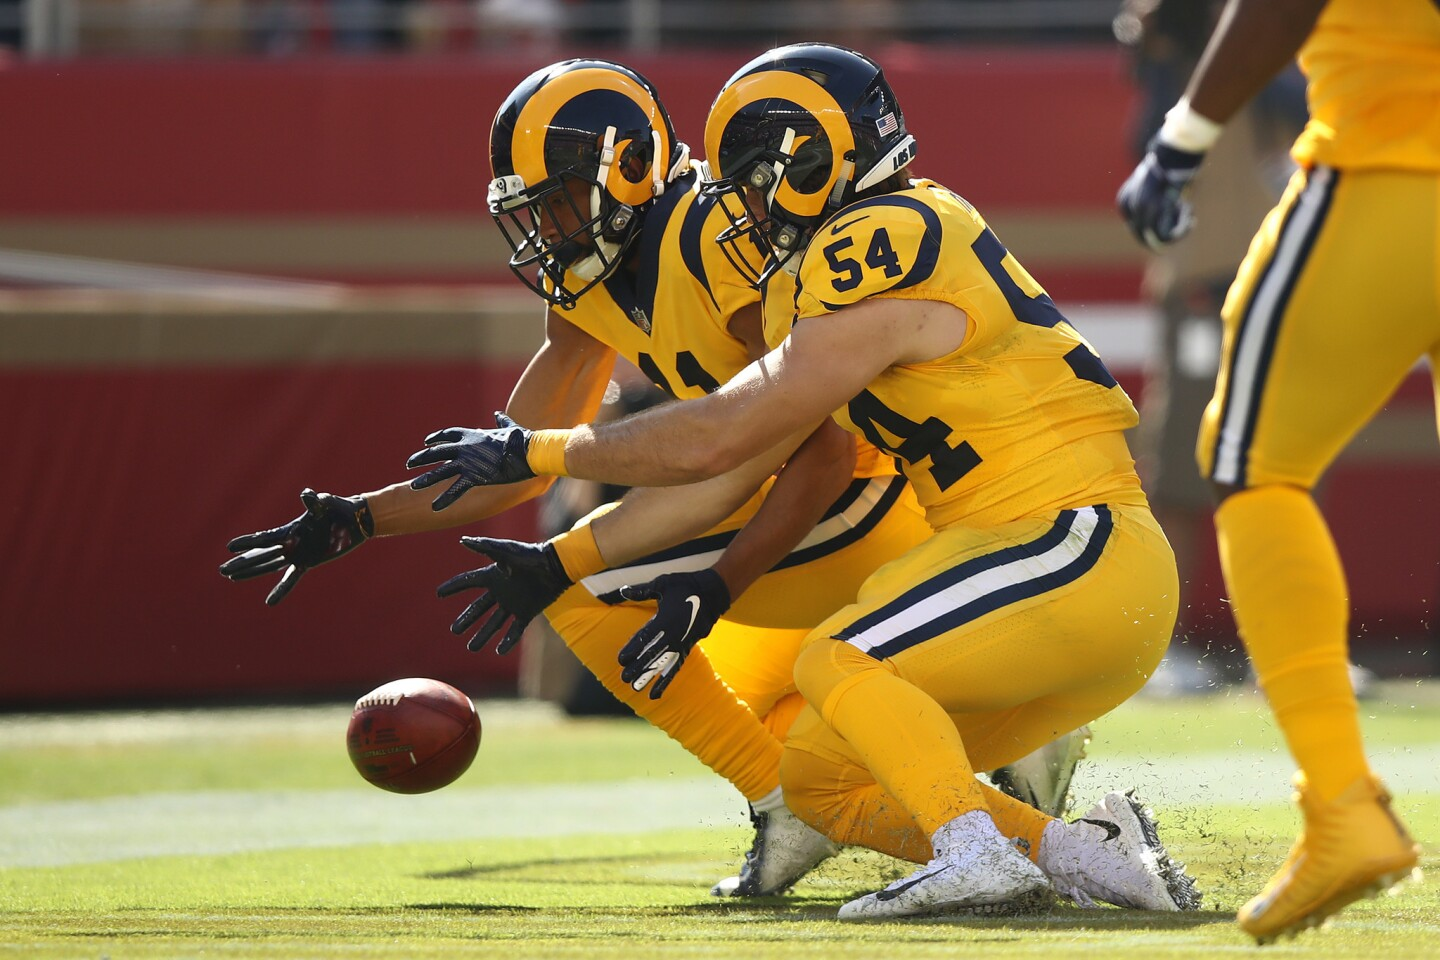 KhaDarel Hodge #11 and Bryce Hager #54 of the Los Angeles Rams dive for a blocked punt in the endzone during their NFL game against the San Francisco 49ers at Levi's Stadium on October 21, 2018 in Santa Clara, California.